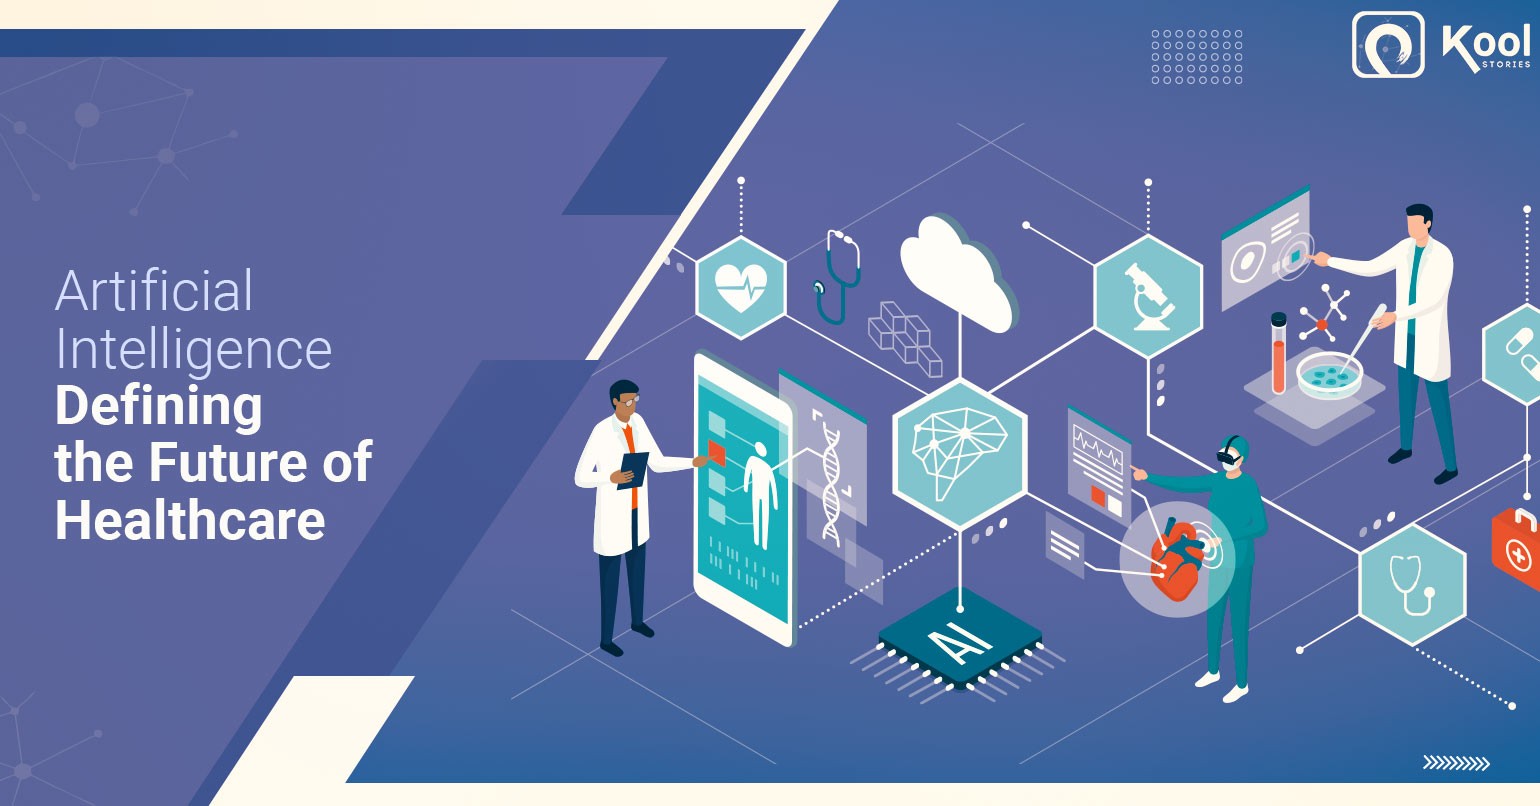 Artificial Intelligence Defining the Future of Healthcare